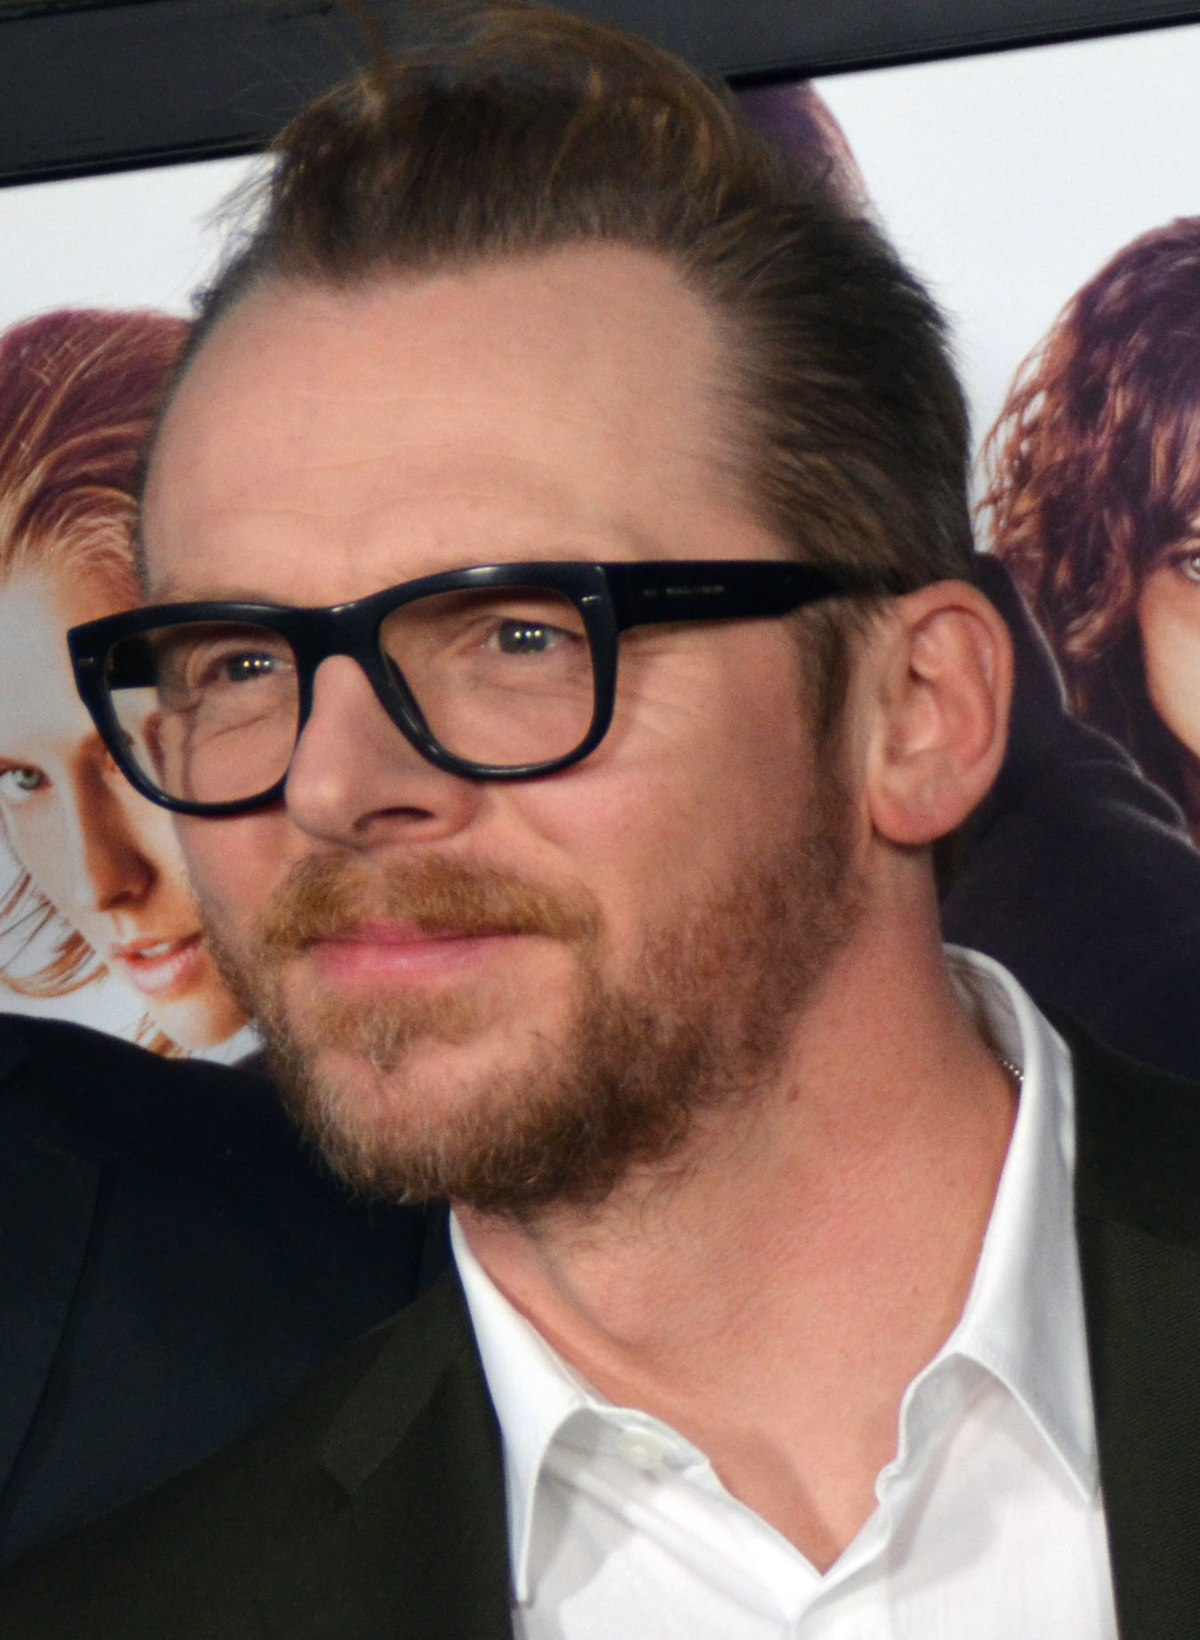 Simon Pegg - Wikipedia